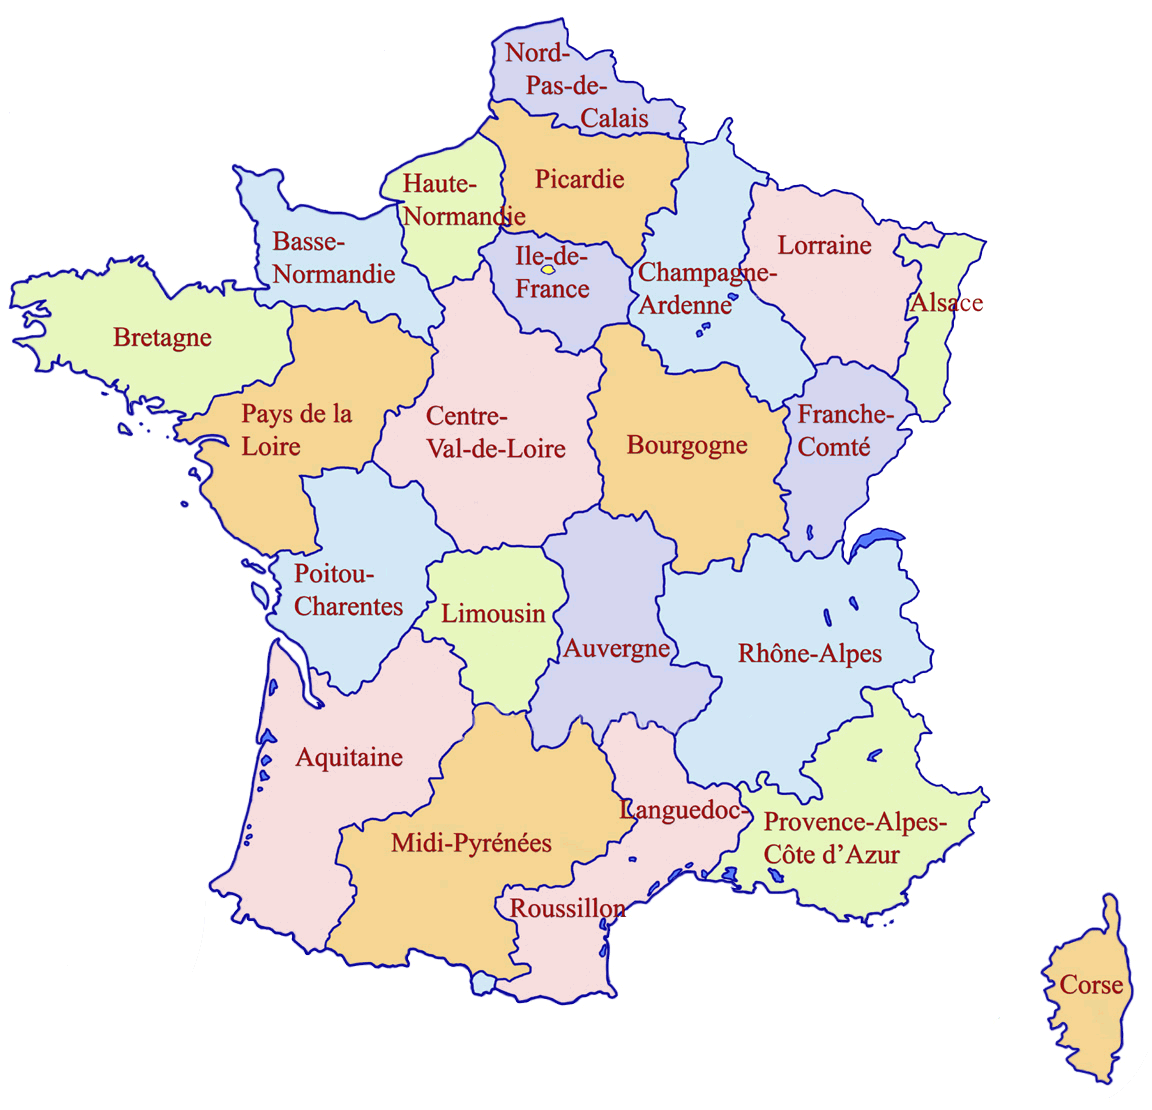 Medieval Map Of France.France Regions Map Mapsof Net